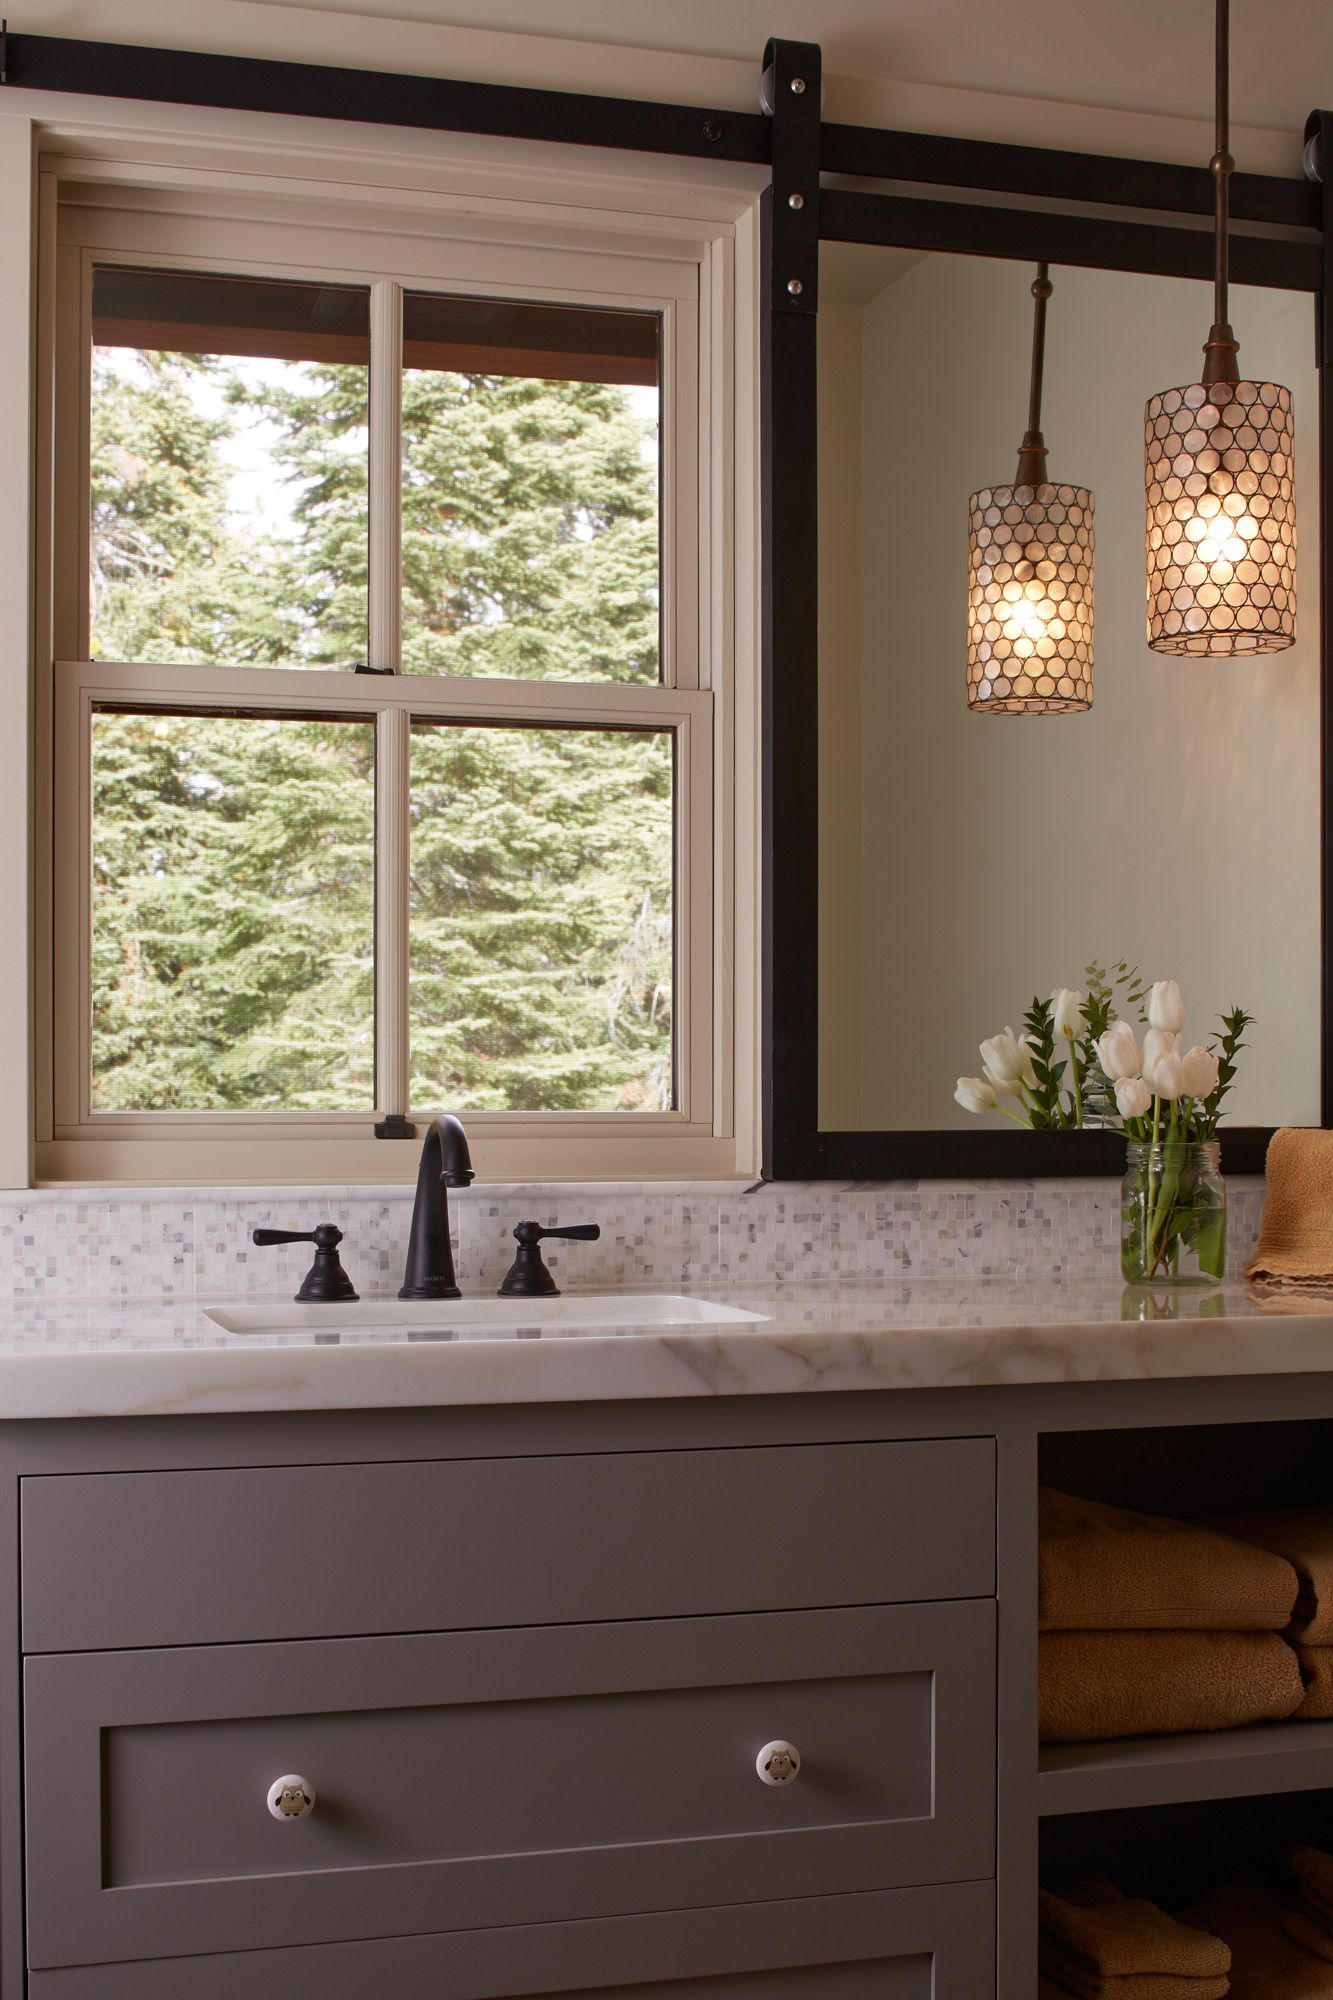 Clever Mirror Solution For Window Over Vanity Sliding Track For Mirror Home Adl Interior Designer Bathroom Mirror Modern Bathroom Mirrors Elegant Bathroom